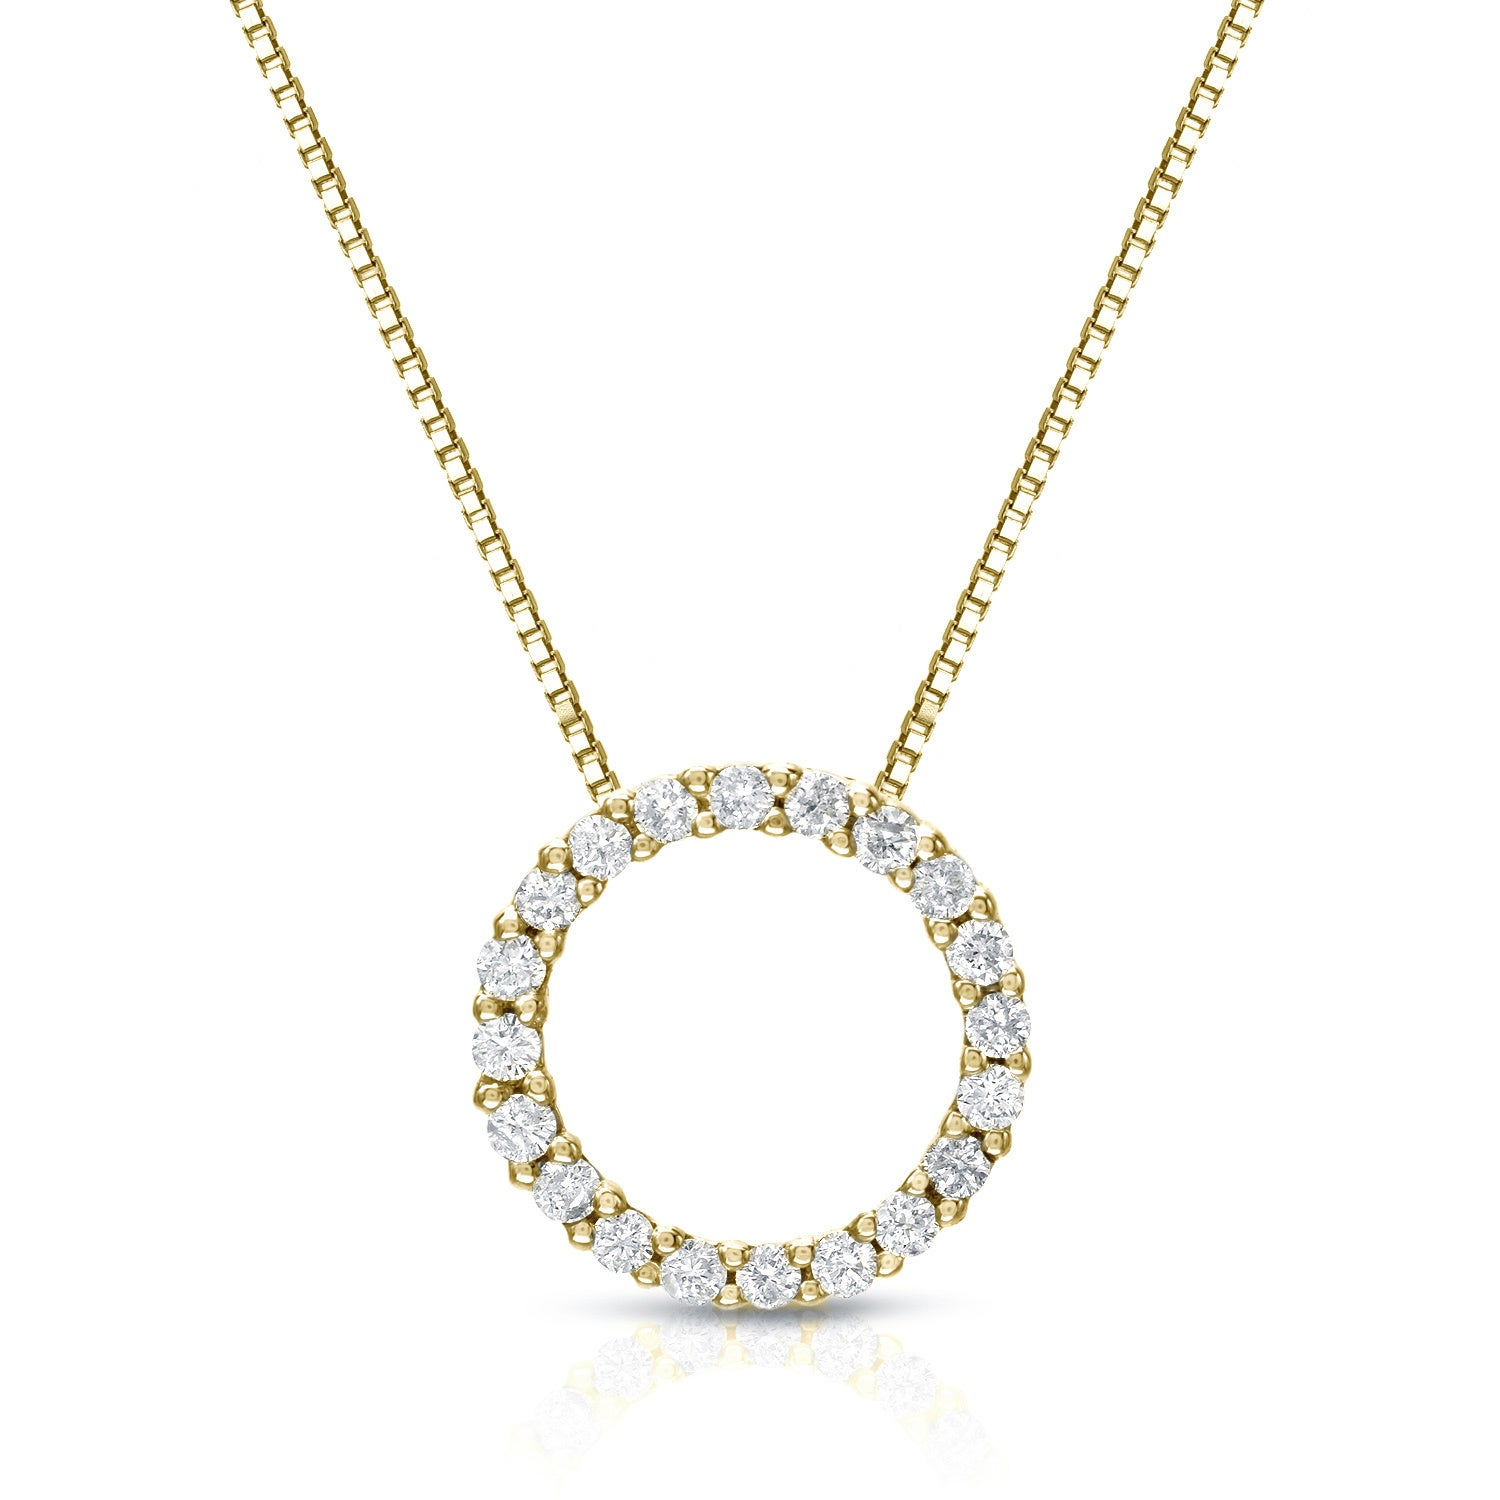 Shop auriya 14k yellow gold diamond circle necklace on sale free shop auriya 14k yellow gold diamond circle necklace on sale free shipping today overstock 9311262 aloadofball Gallery